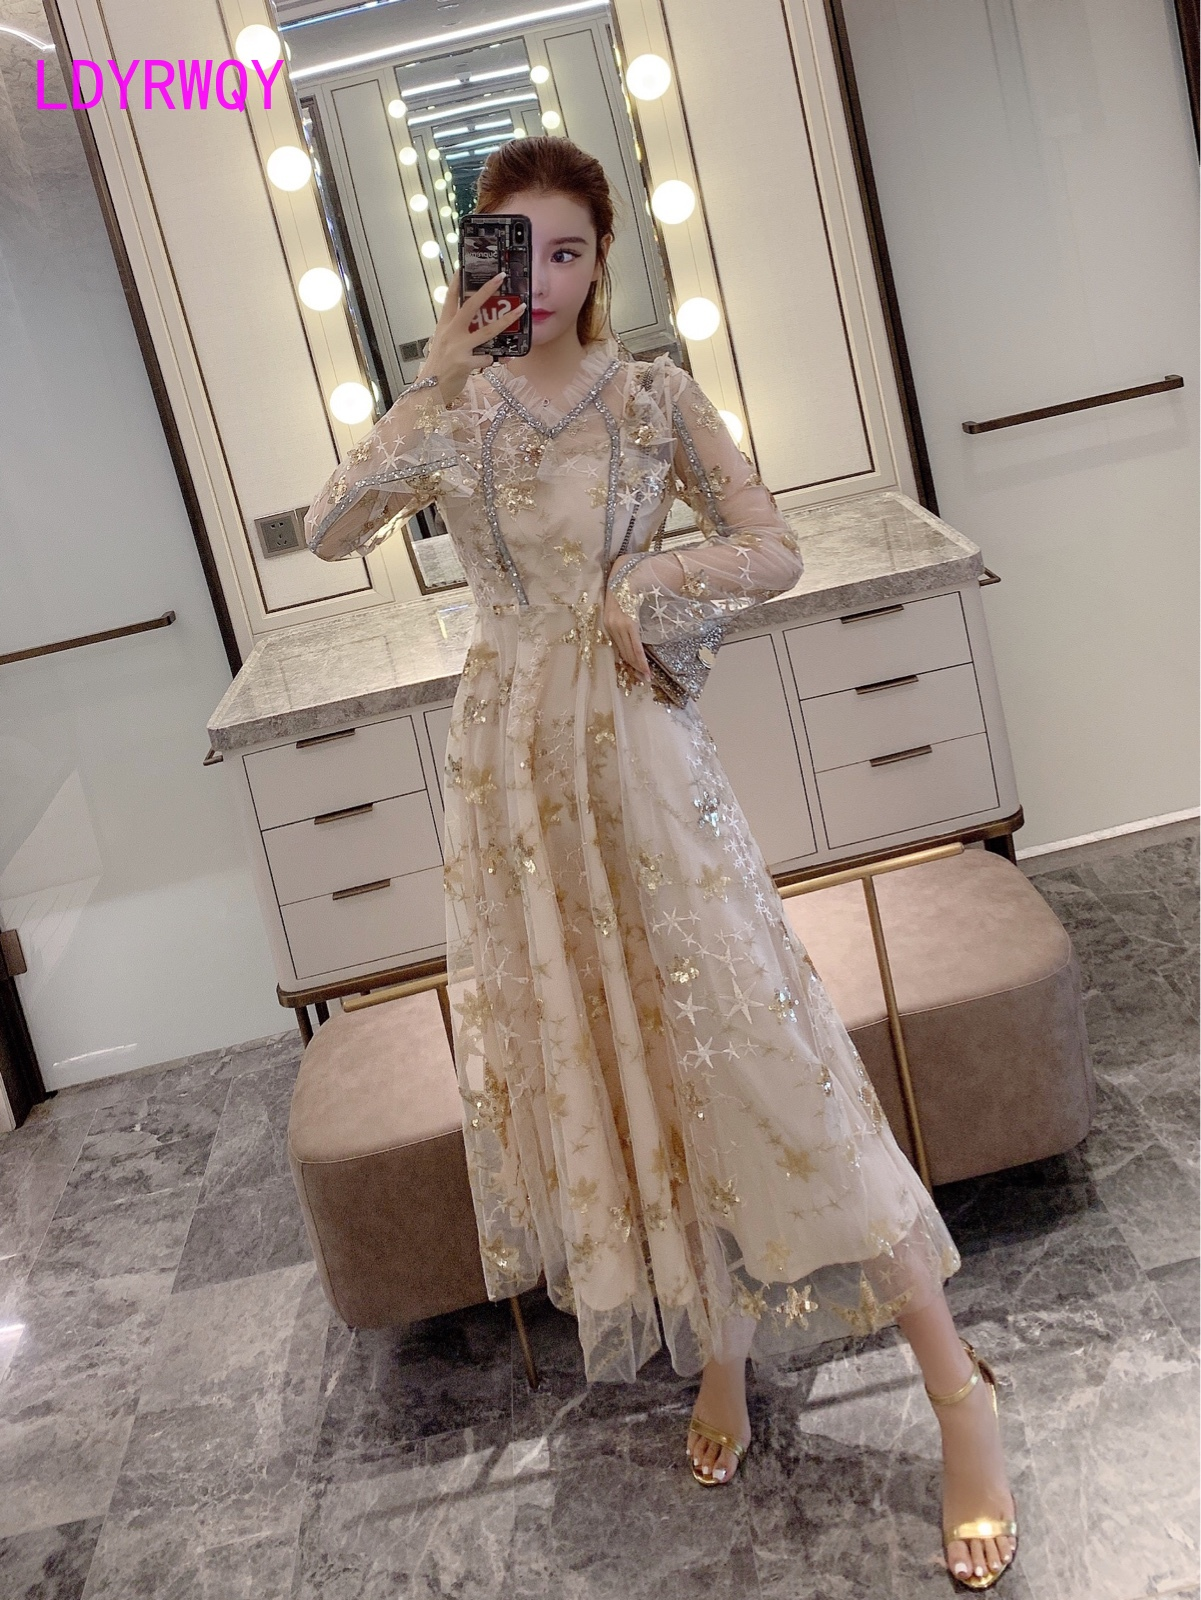 2019 early autumn new heavy industry mesh sequins embroidered dress Ankle Length Regular V Neck Full in Dresses from Women 39 s Clothing